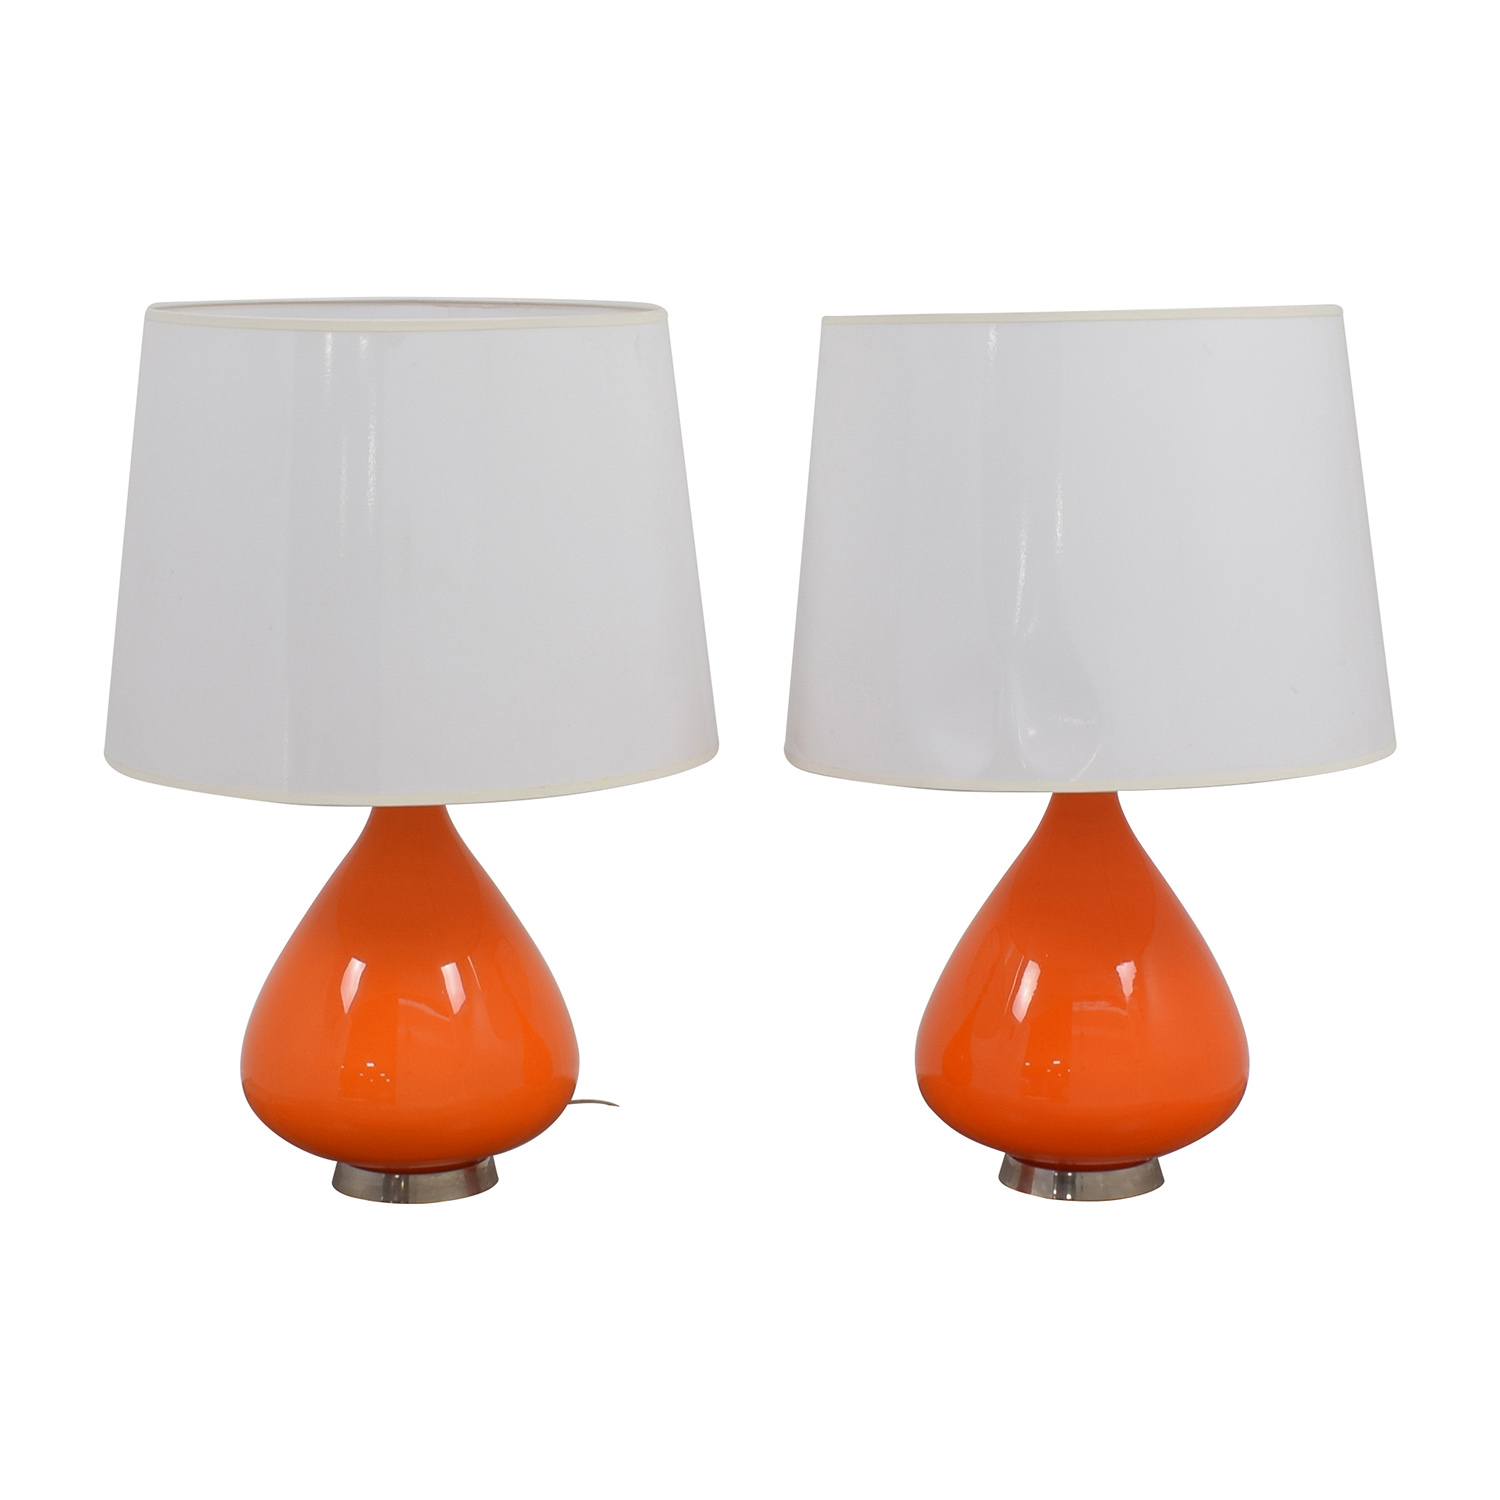 shades about lamps house orange lamp table ideas for all design shade cute